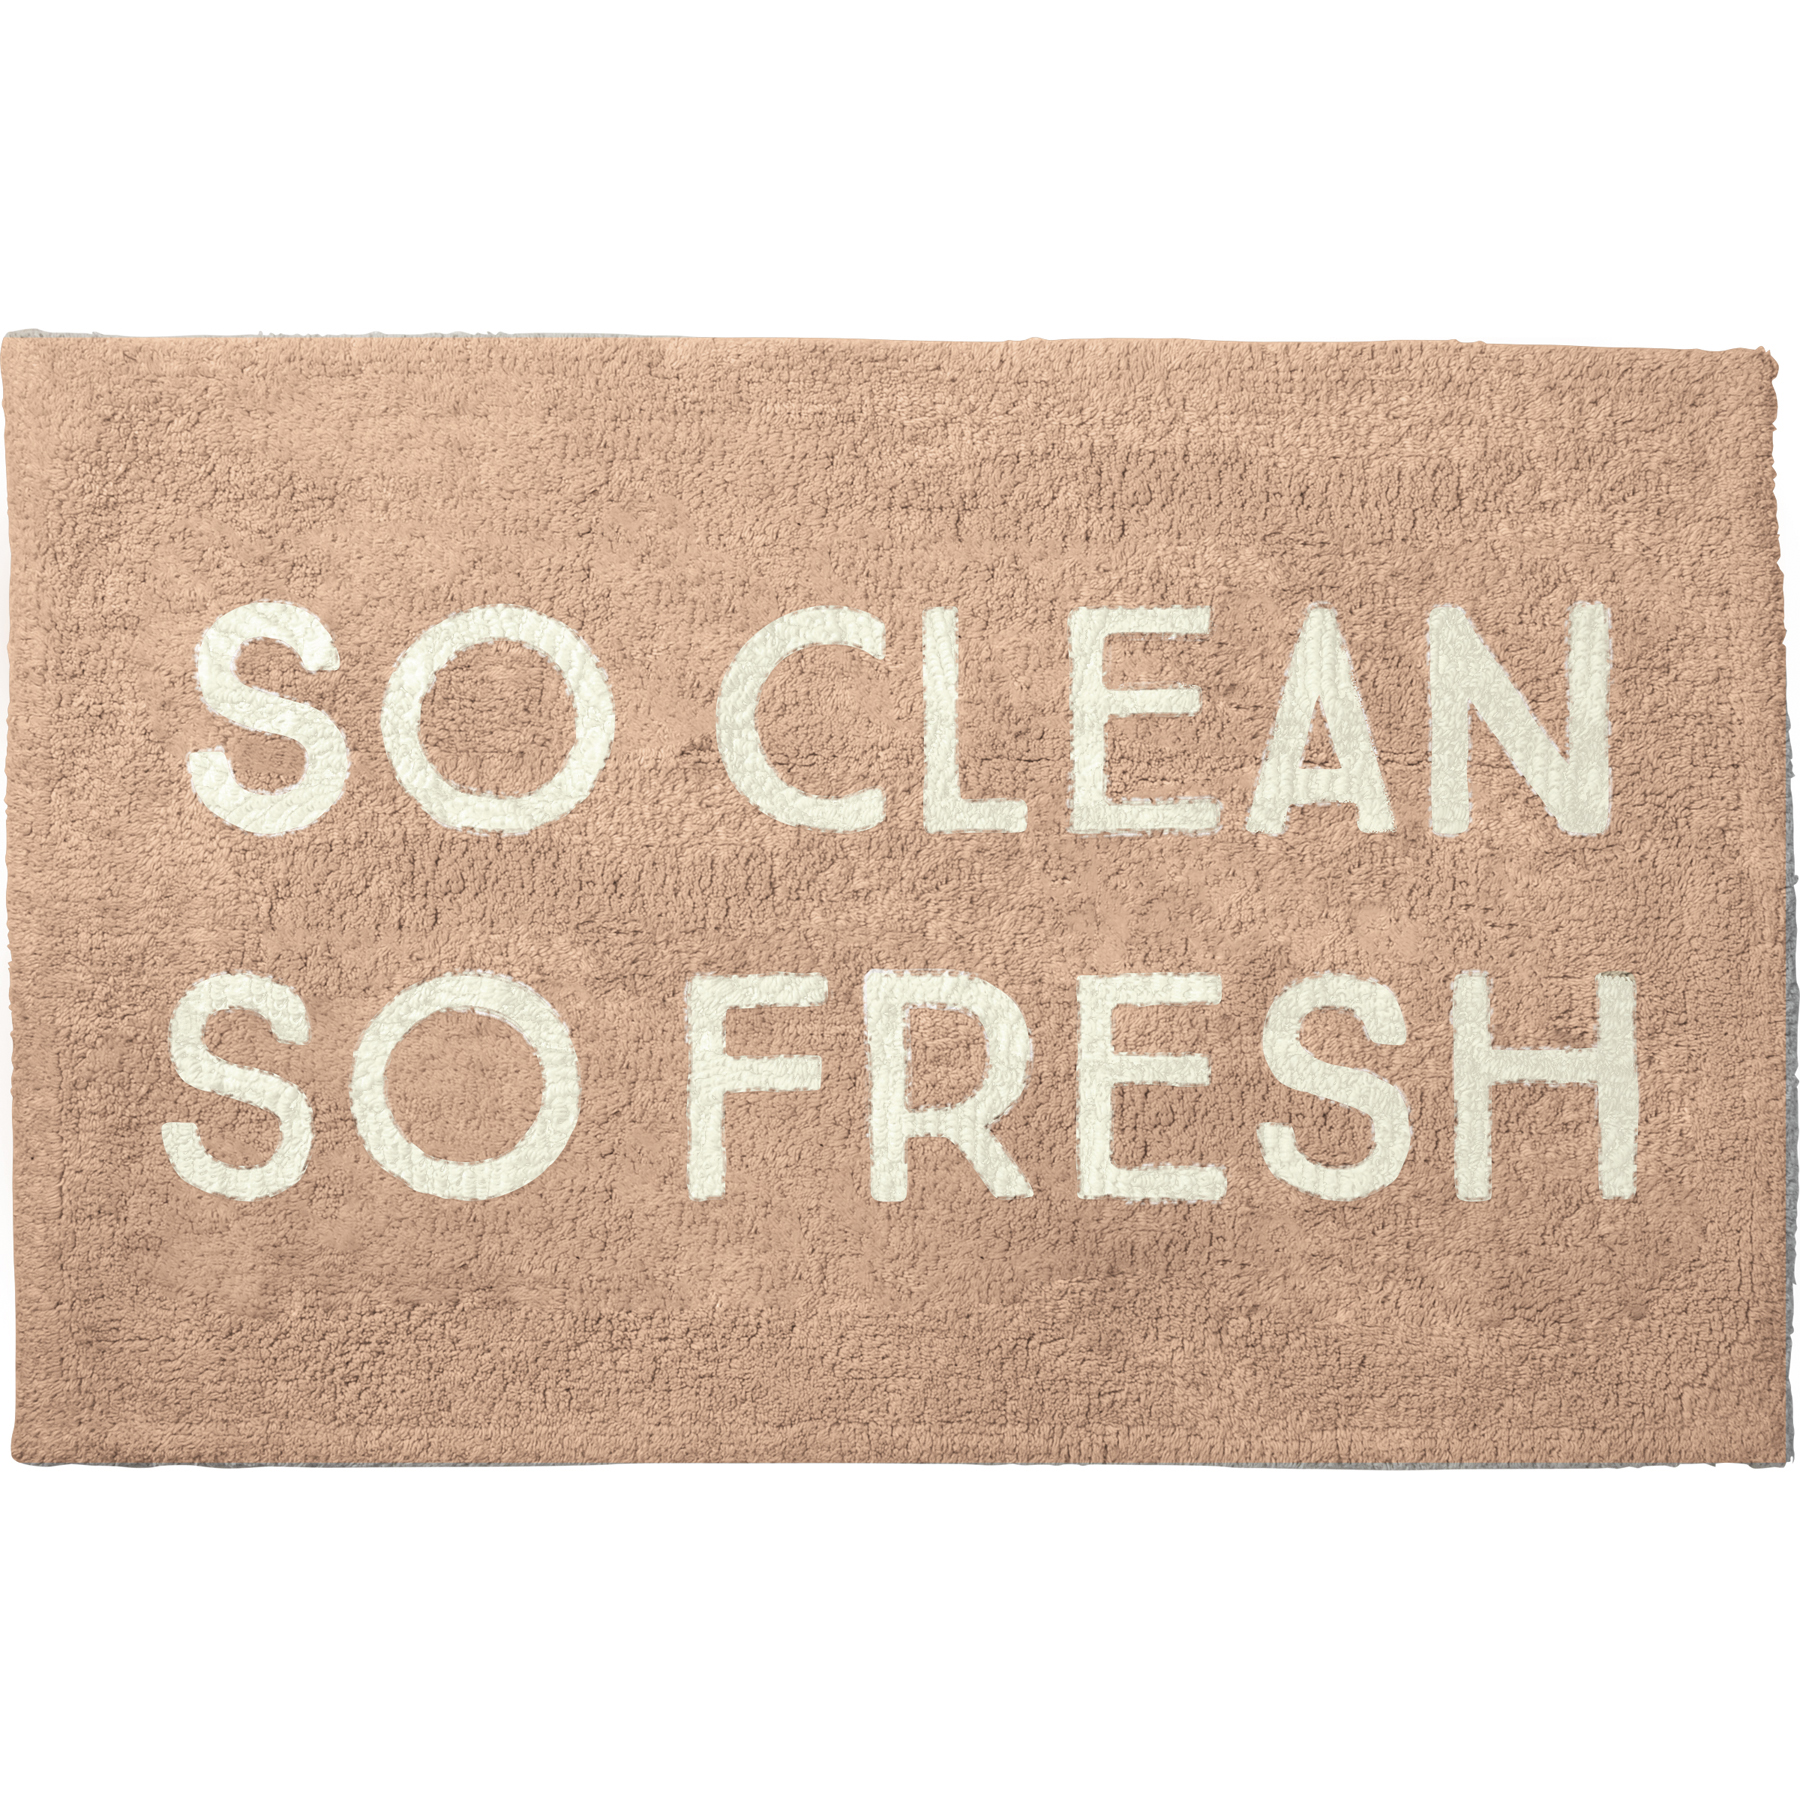 Bath Rug So Clean So Fresh Room By Room Collection Primitives By Kathy